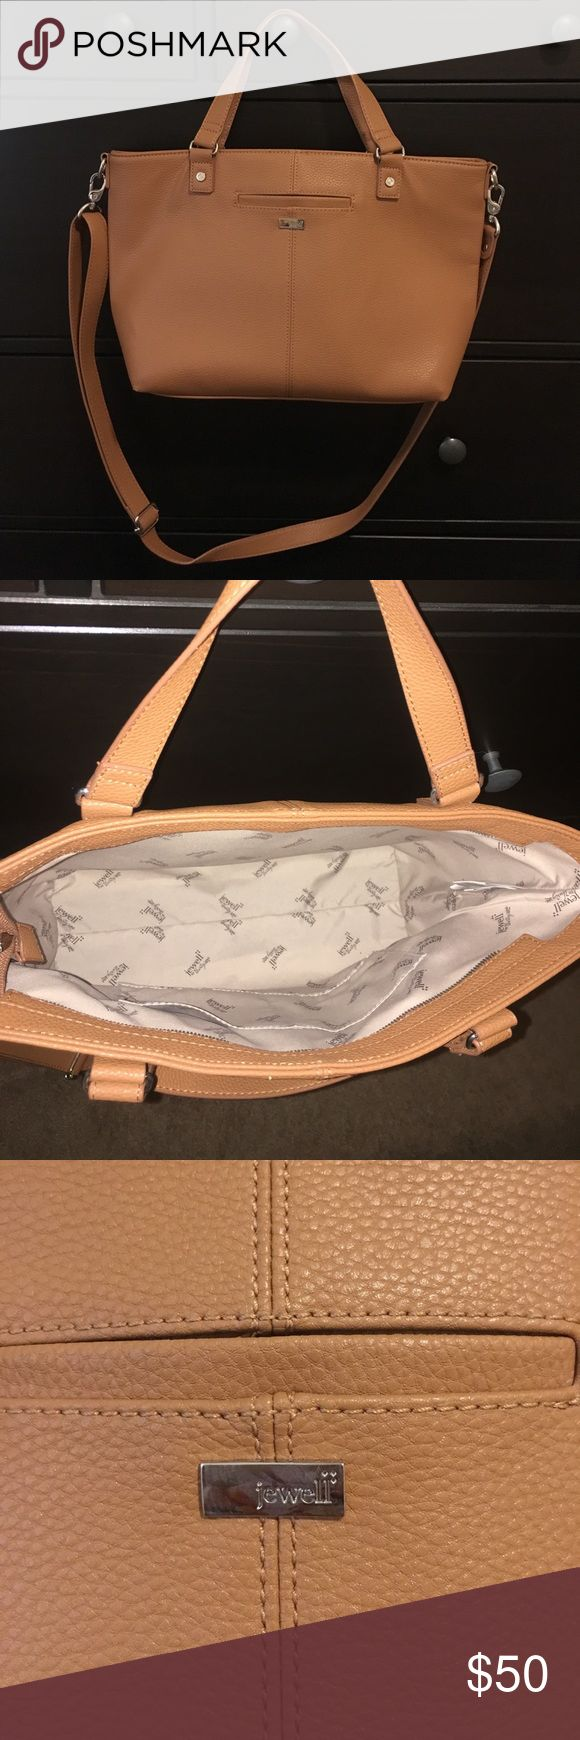 Thirty-One Jewell Handbag Brown Thirty-One Miles of style handbag. Never been used. Non-smoker home. ❌ No trades. Jewell by Thirty-One Bags Shoulder Bags